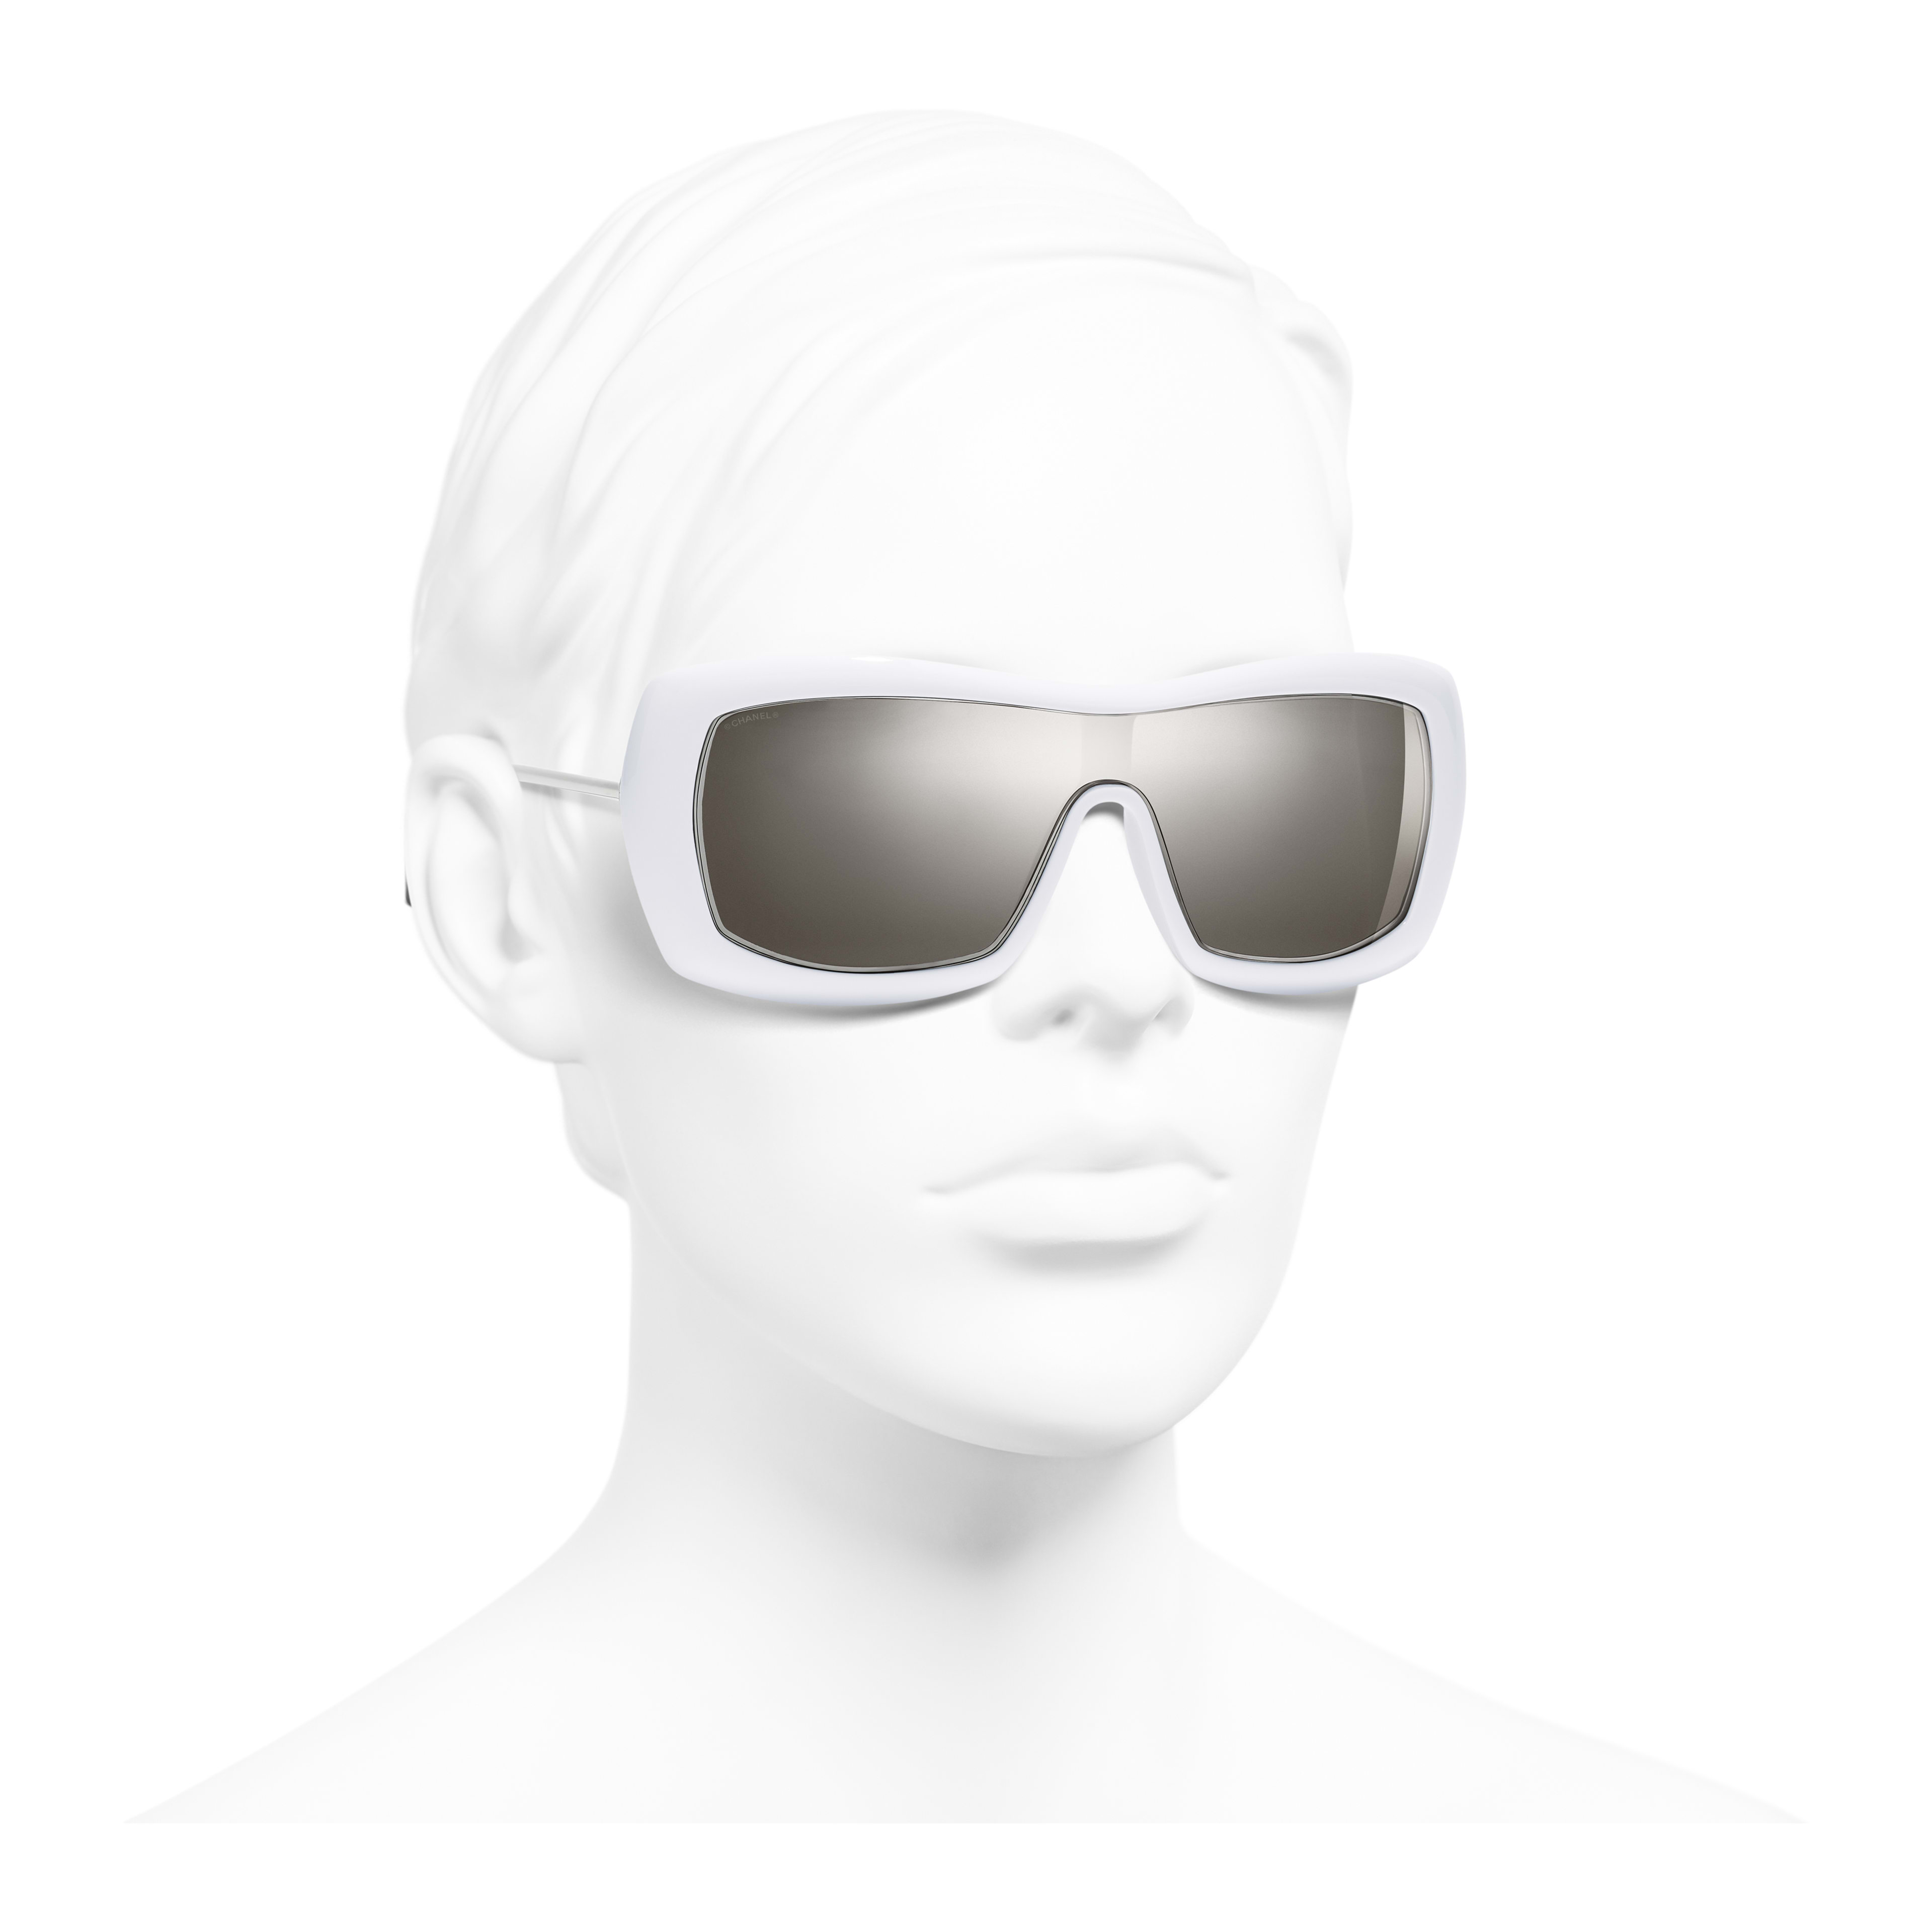 Shield Sunglasses - White - Acetate & Metal - Worn 3/4 view - see full sized version